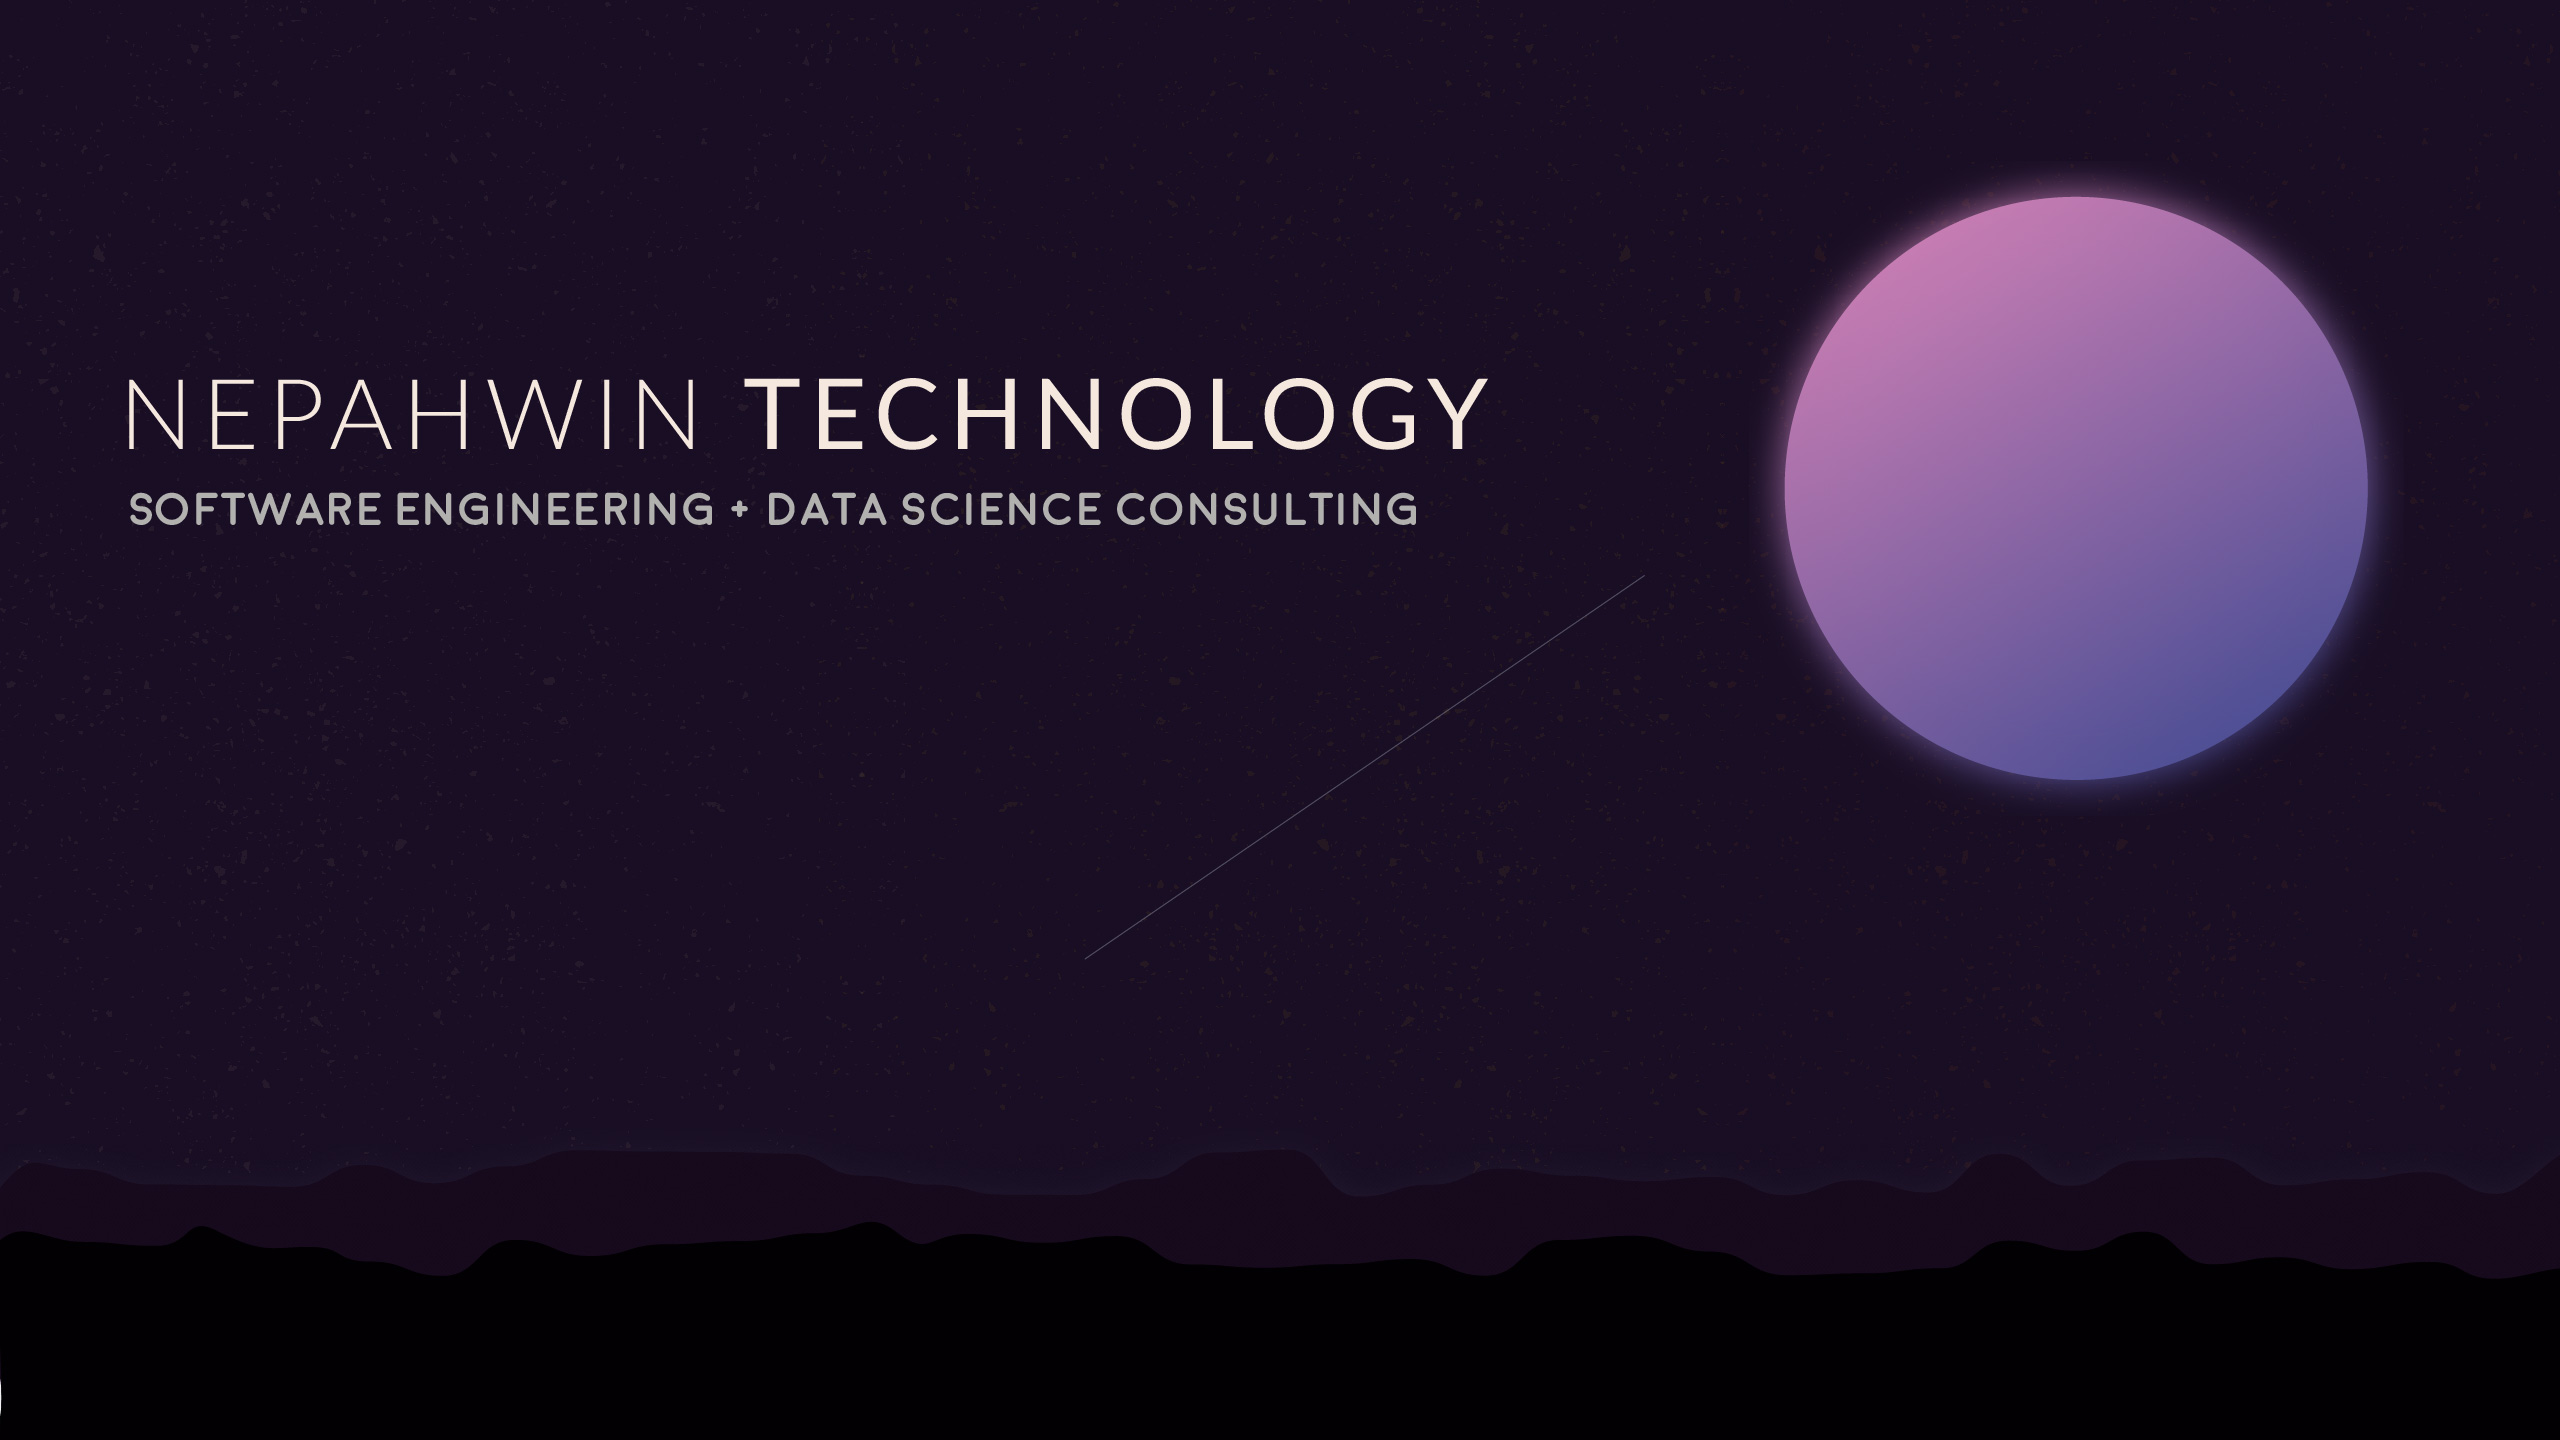 Nepahwin Technology: Software Engineering + Data Science